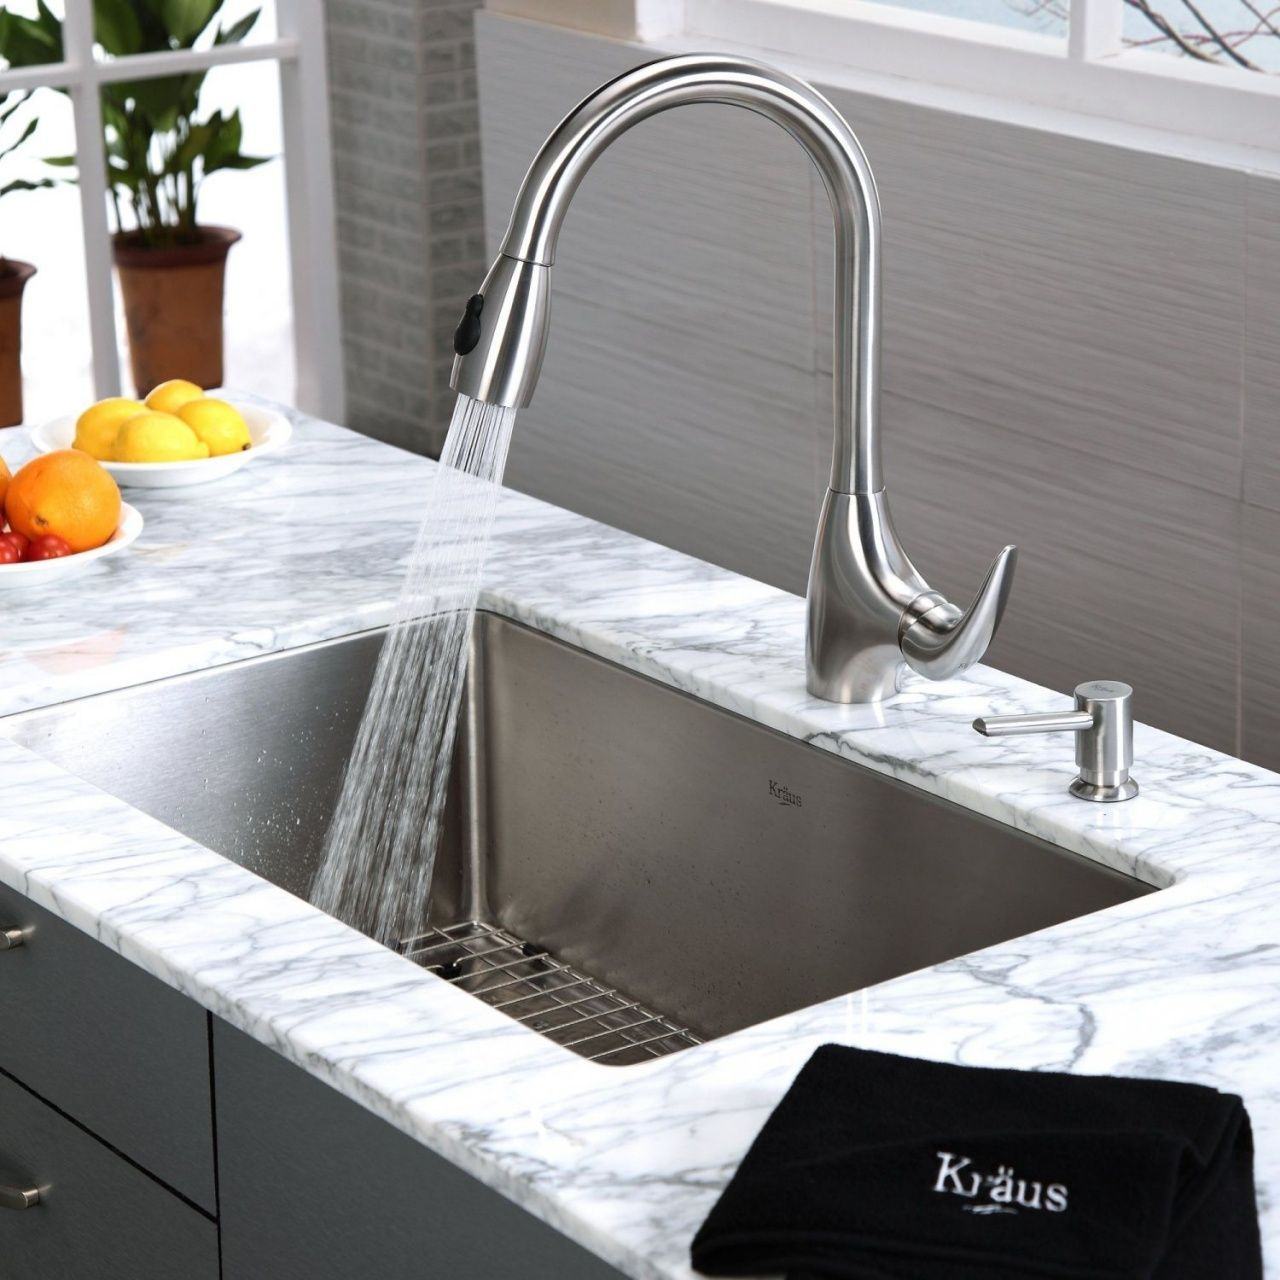 Kitchen Sink Size For 30 Inch Cabinet Cabinet Inch Kitchen Sink Size Stainless Steel Kitchen Sink Undermount 30 Inch Kitchen Sink Undermount Kitchen Sinks